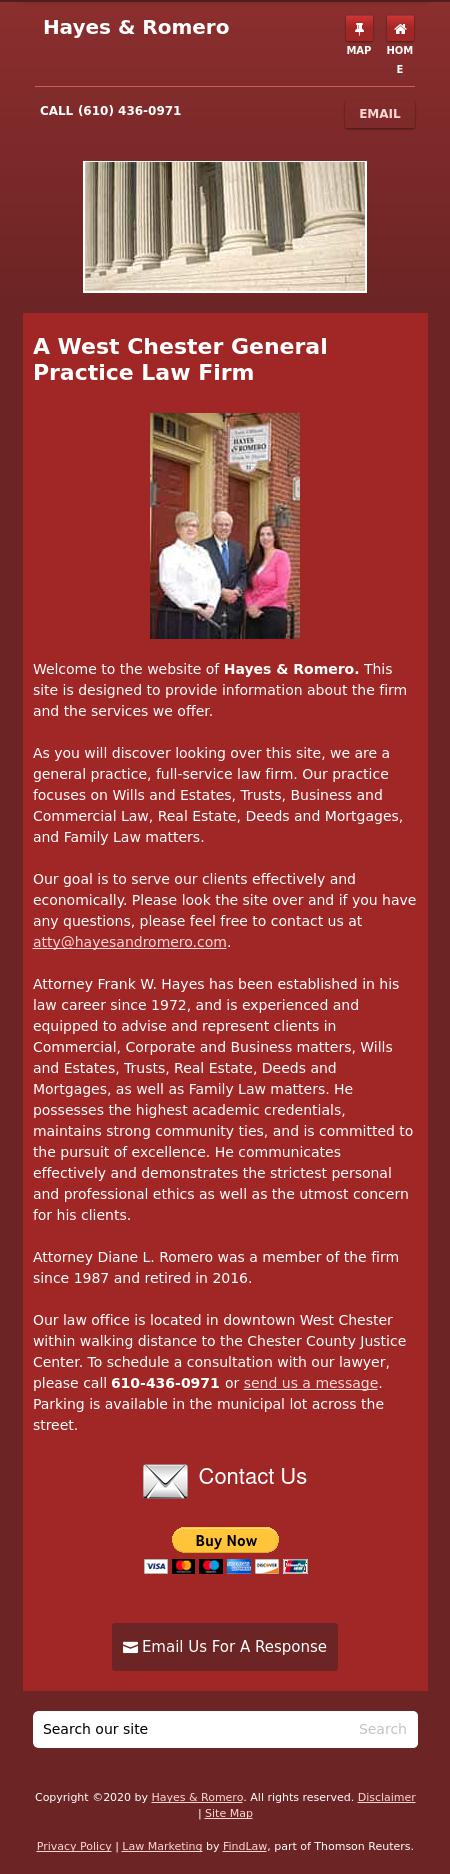 Hayes & Romero | West Chester PA Law | LawyerLand